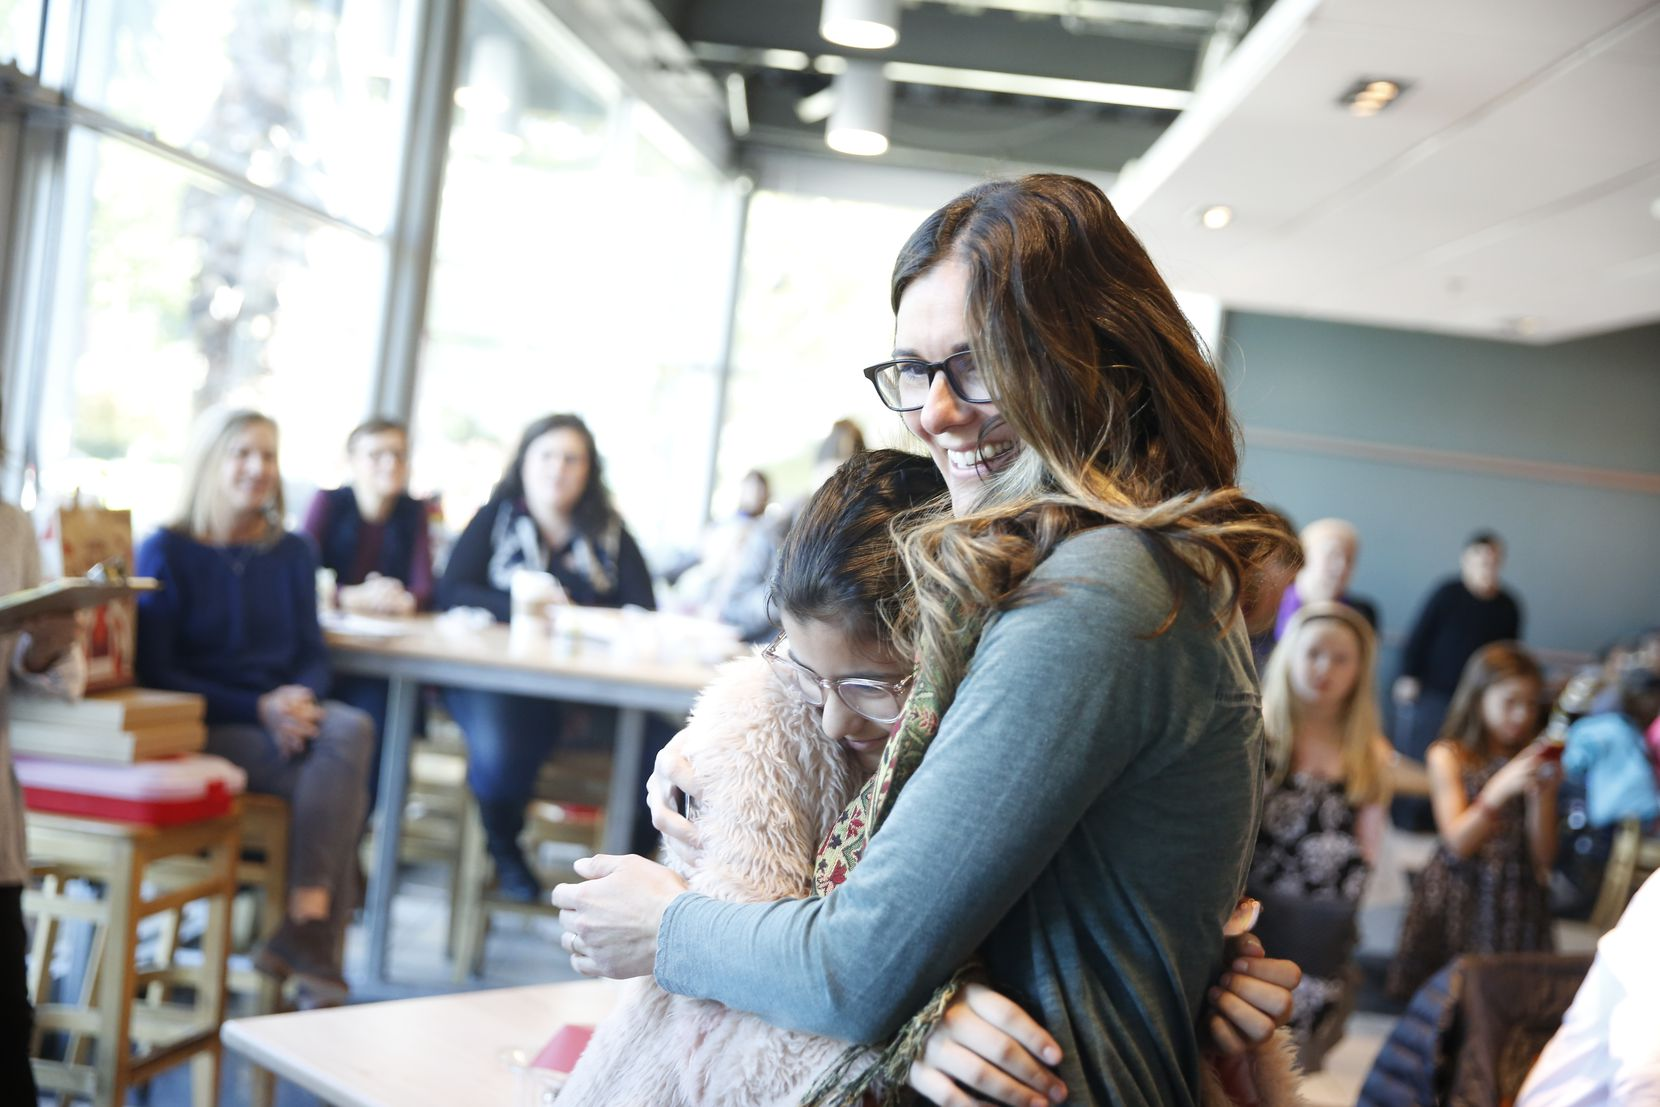 Sheila Bustillos hugs her daughter after winning in The Dallas Morning News cookie contest at Central Market in Dallas on Nov. 14, 2018.